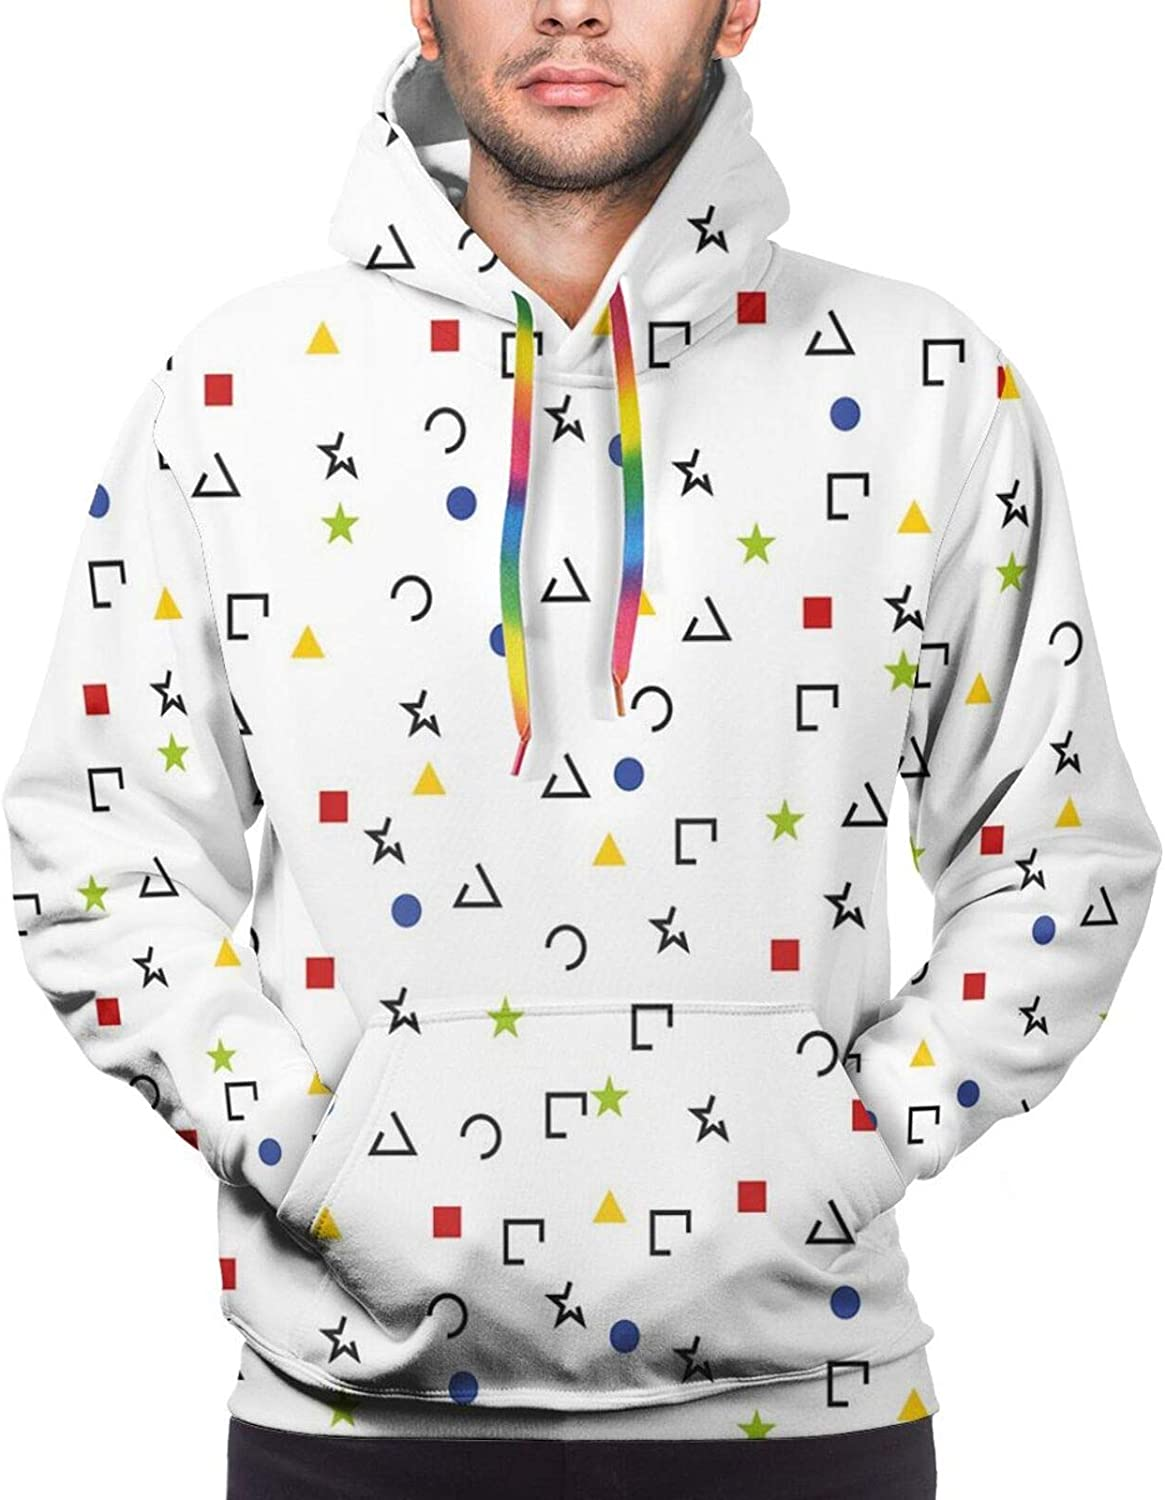 Men's Hoodies Sweatshirts,Abstract Triangle Silhouette and Outlines Big and Small Funky Retro Style